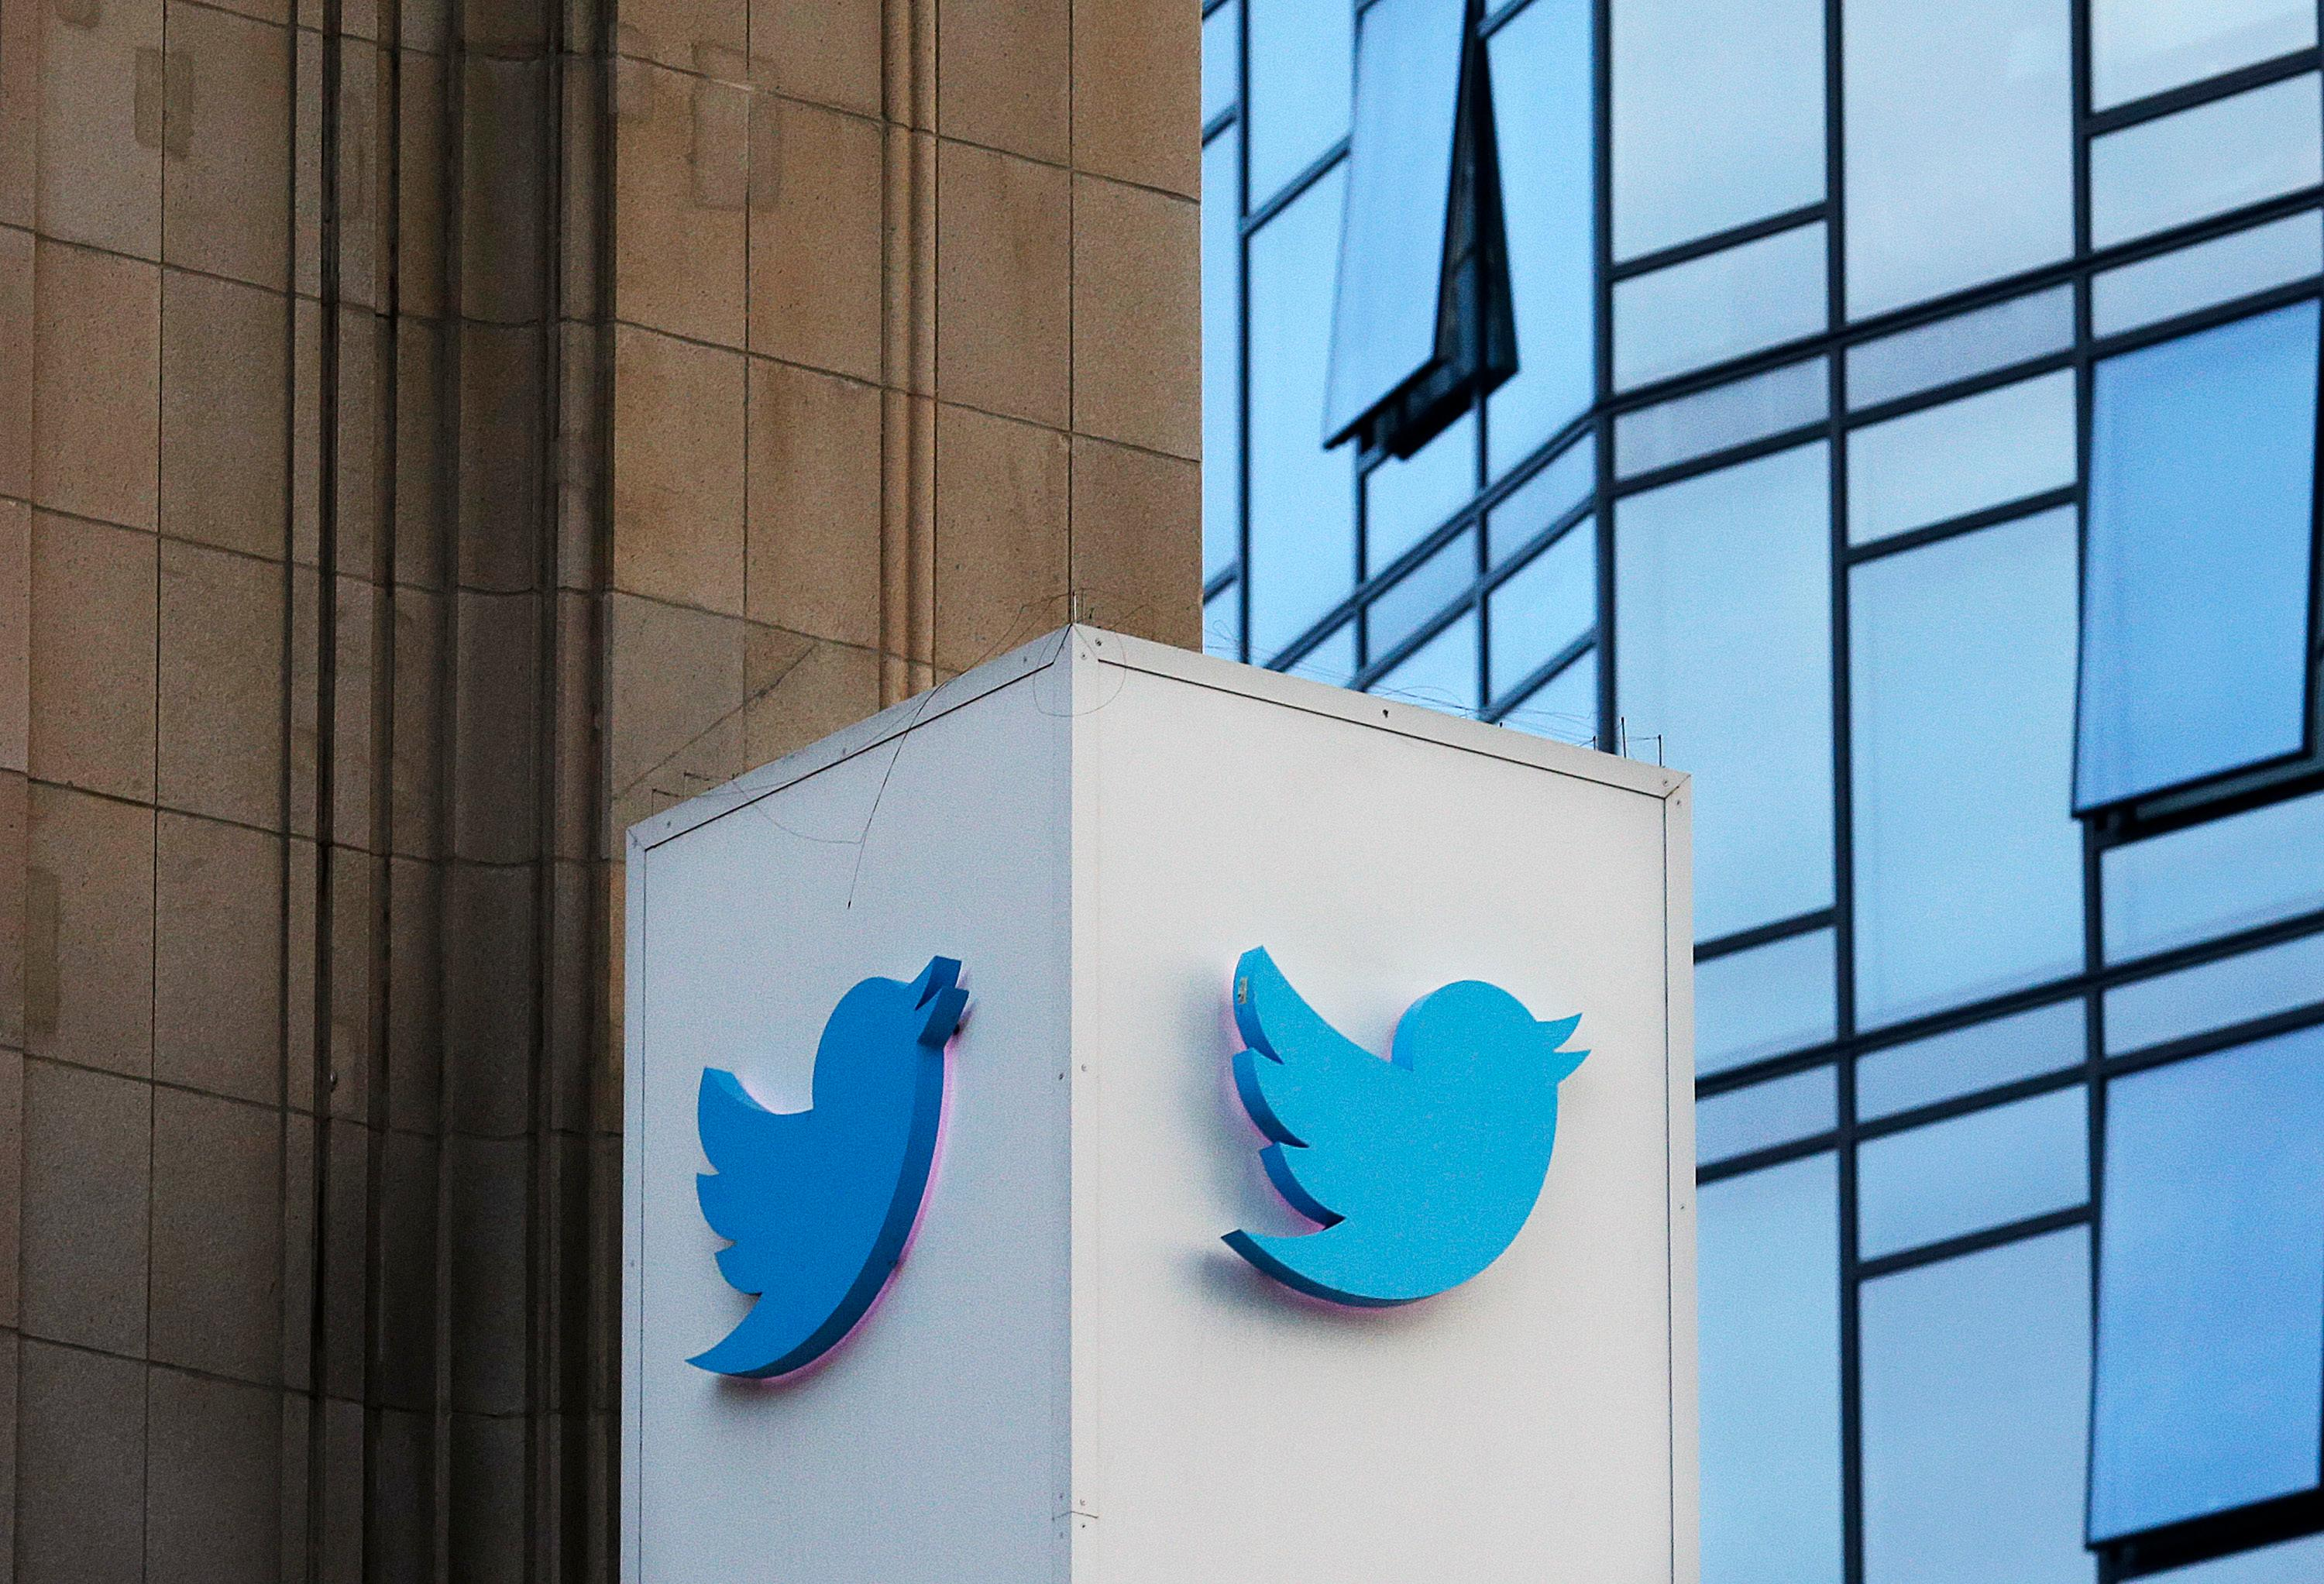 FILE - This Oct. 26, 2016 file photo shows a Twitter sign outside of the company's headquarters in San Francisco. (AP Photo/Jeff Chiu, File)